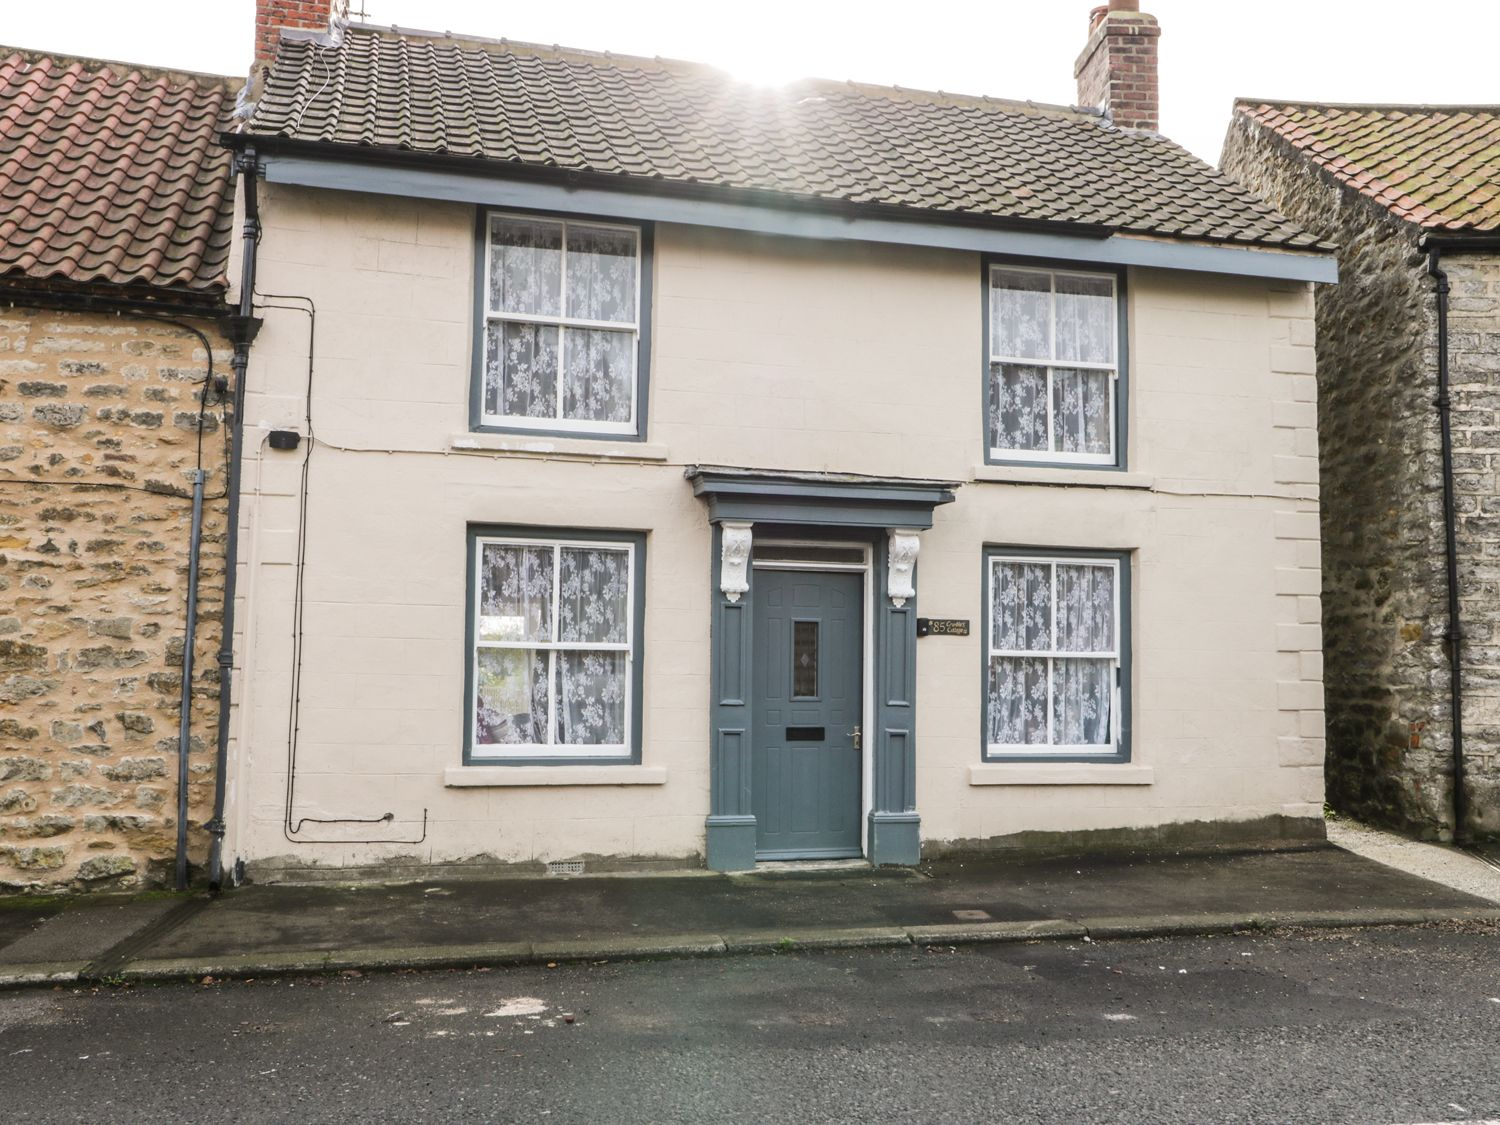 Crumbles Cottage ( Ref 963136 ) Holiday cottage in Kirkbymoorside sleeps 5 guests - Self catering in Ryedale area North Yorkshire